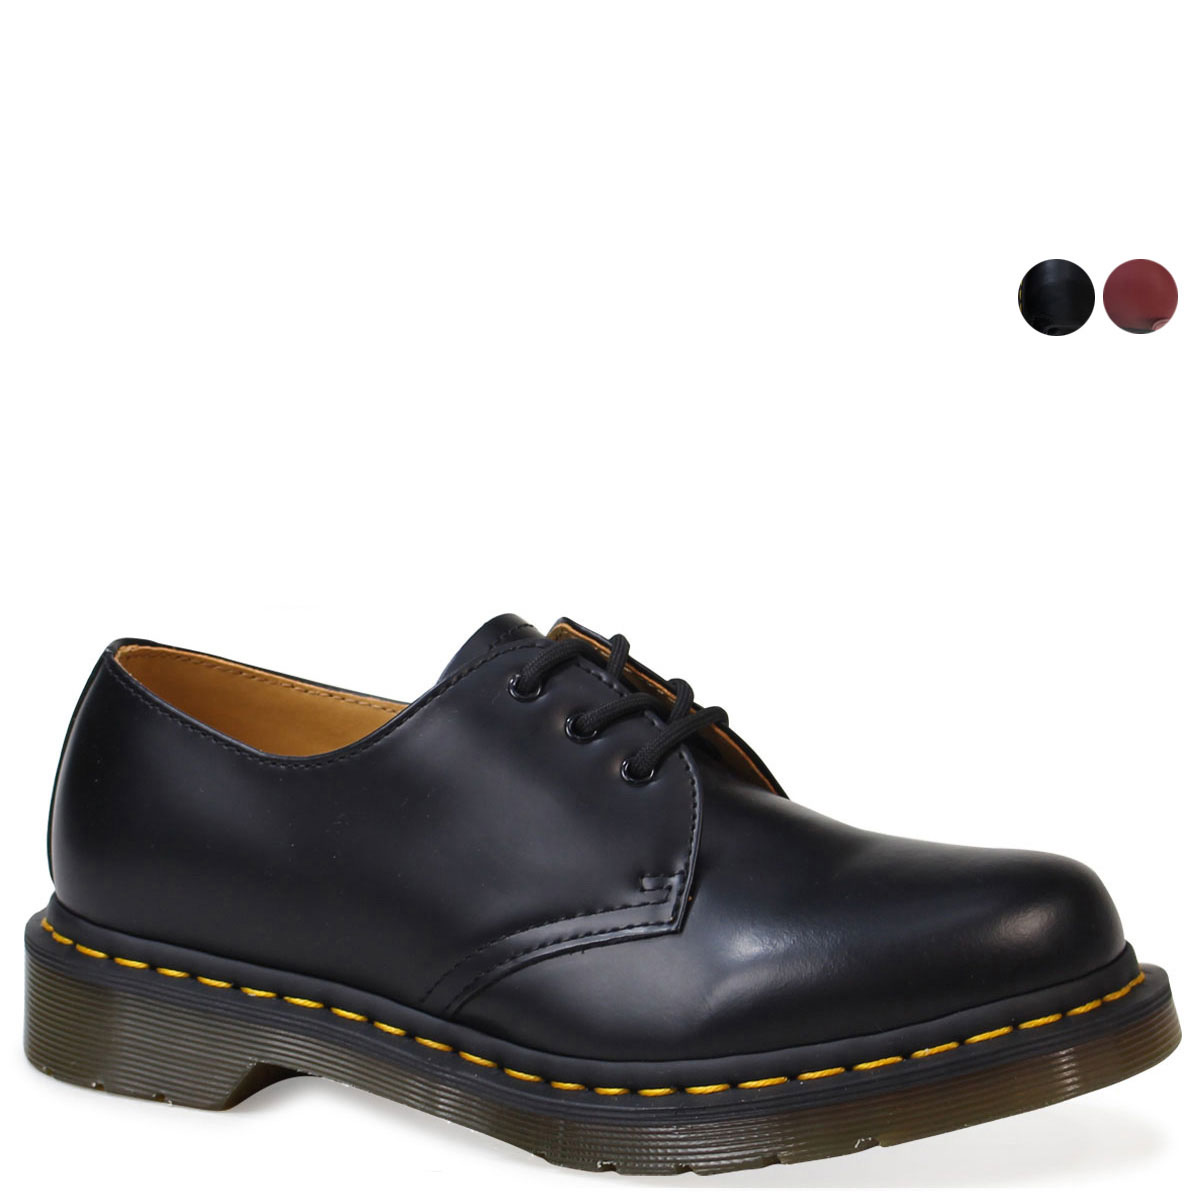 5ffa2680197cb Categories. « All Categories · Shoes · Women's Shoes · Others · Dr.Martens  WOMENS 3EYE SHOE R11837002 3 hall 1461 Lady's doctor Martin ...